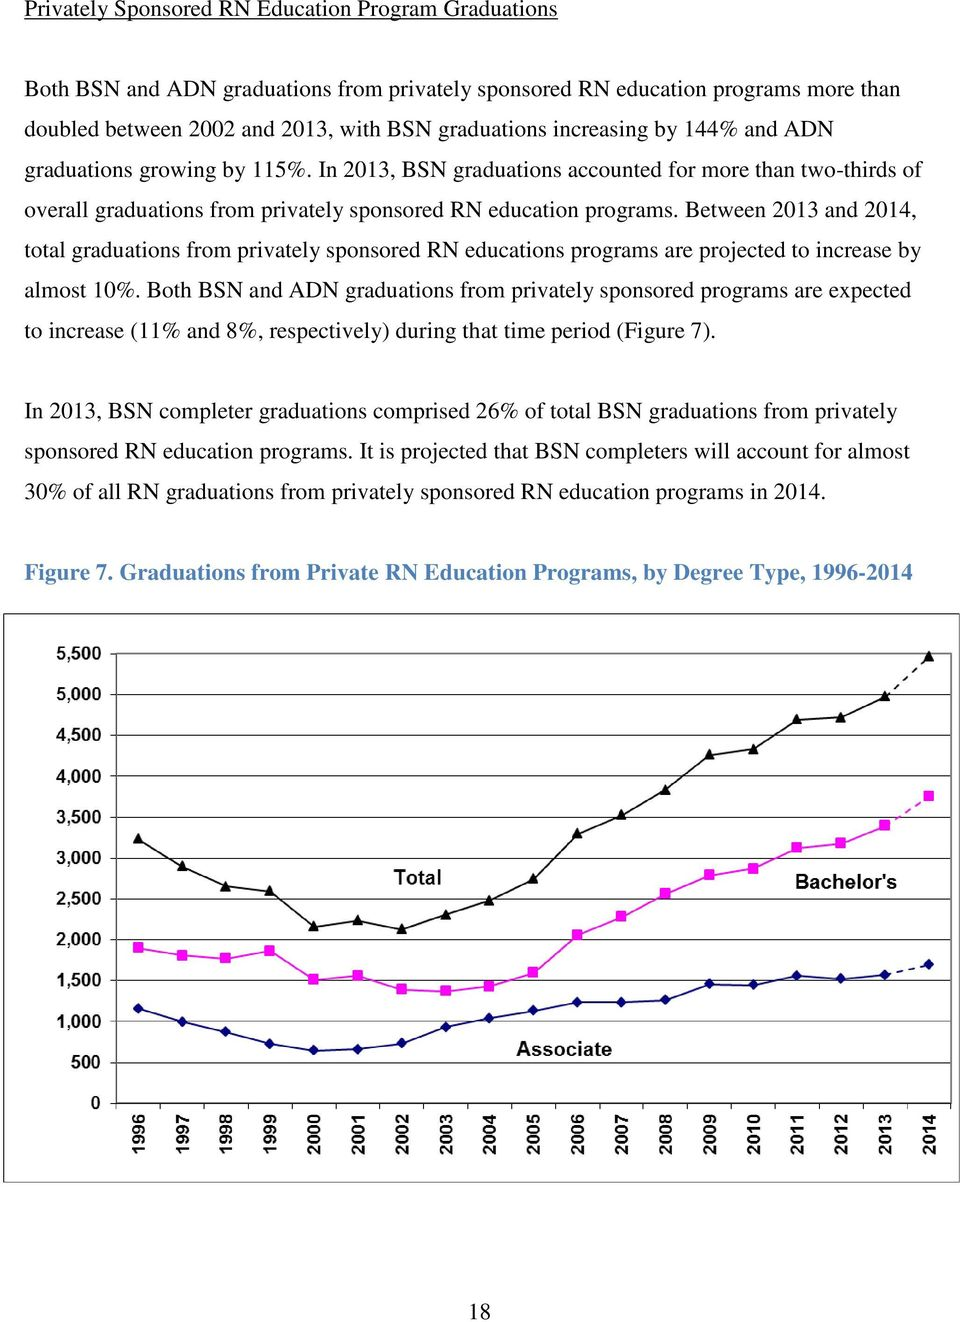 Between 2013 and 2014, total graduations from privately sponsored RN educations programs are projected to increase by almost 10%.